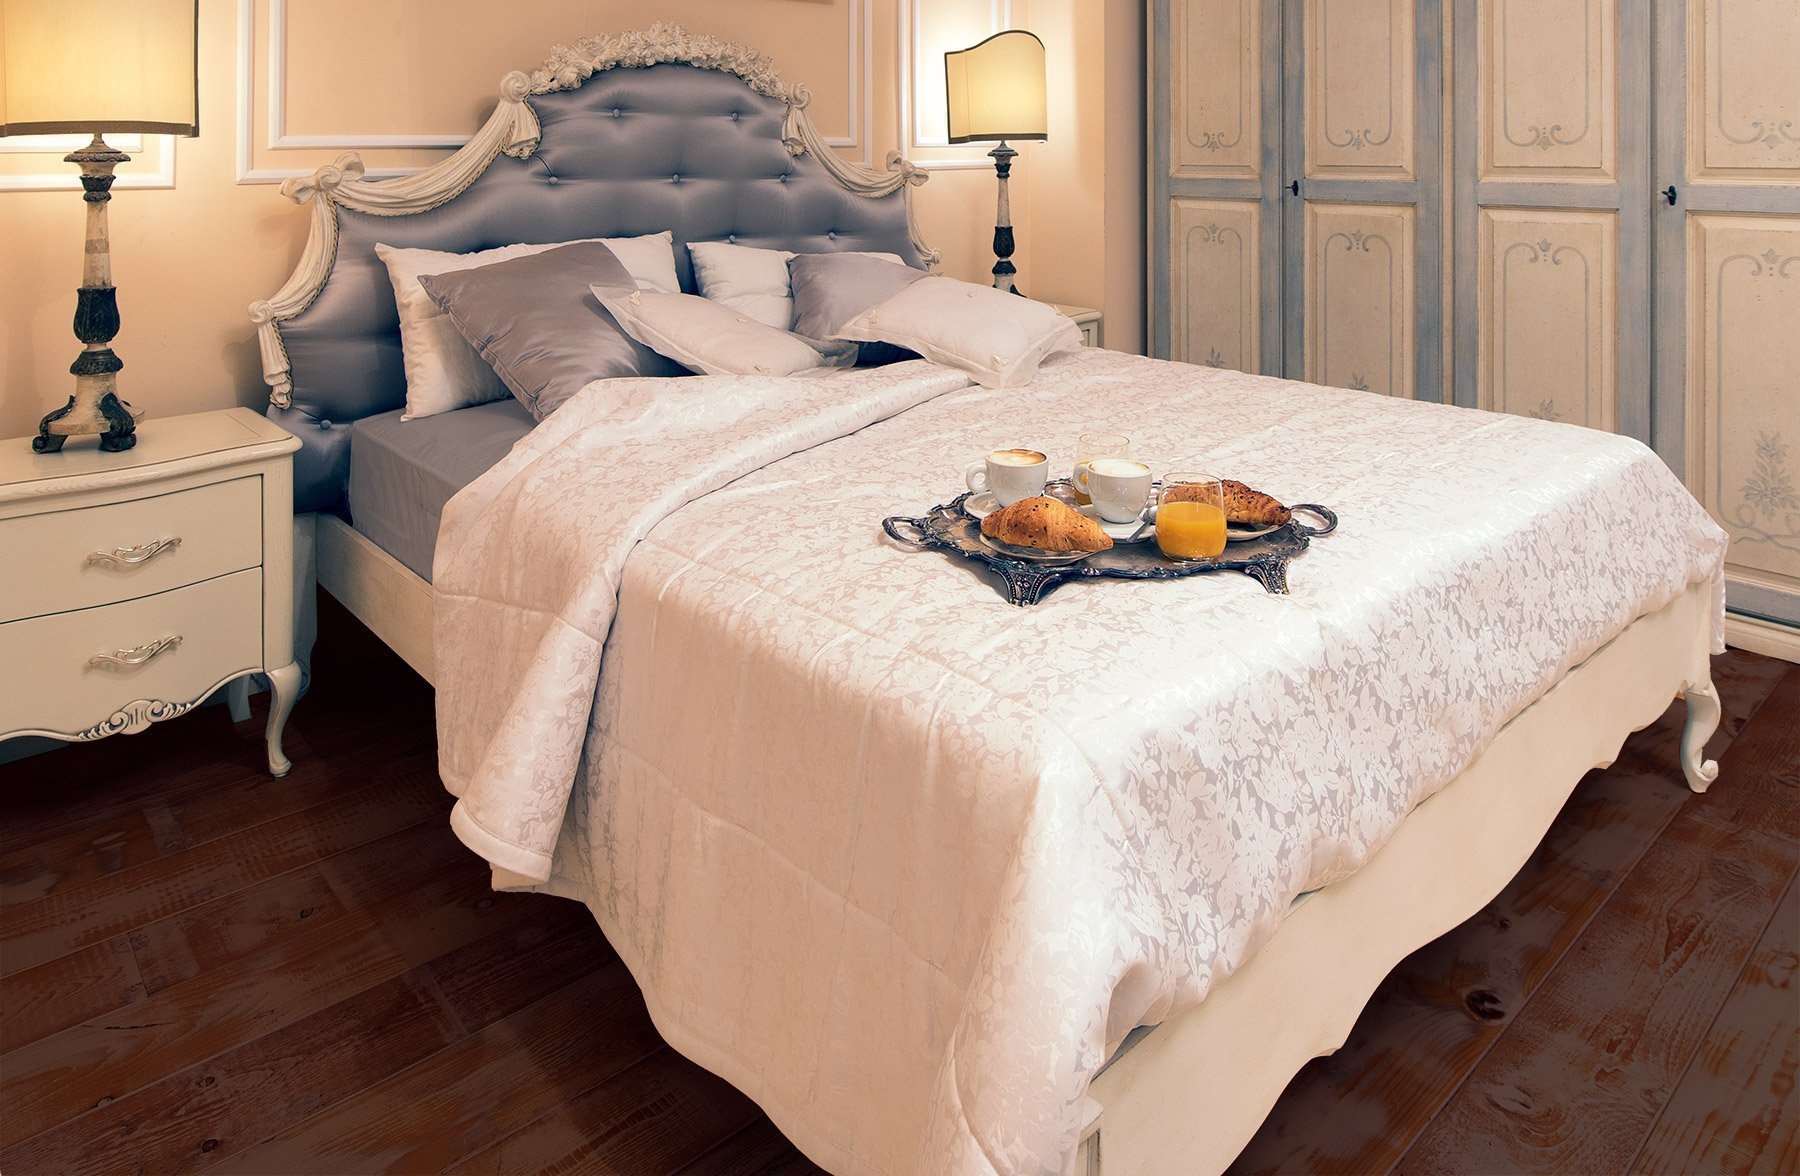 veracchi_mobili_bedroom_italian_furniture_bed